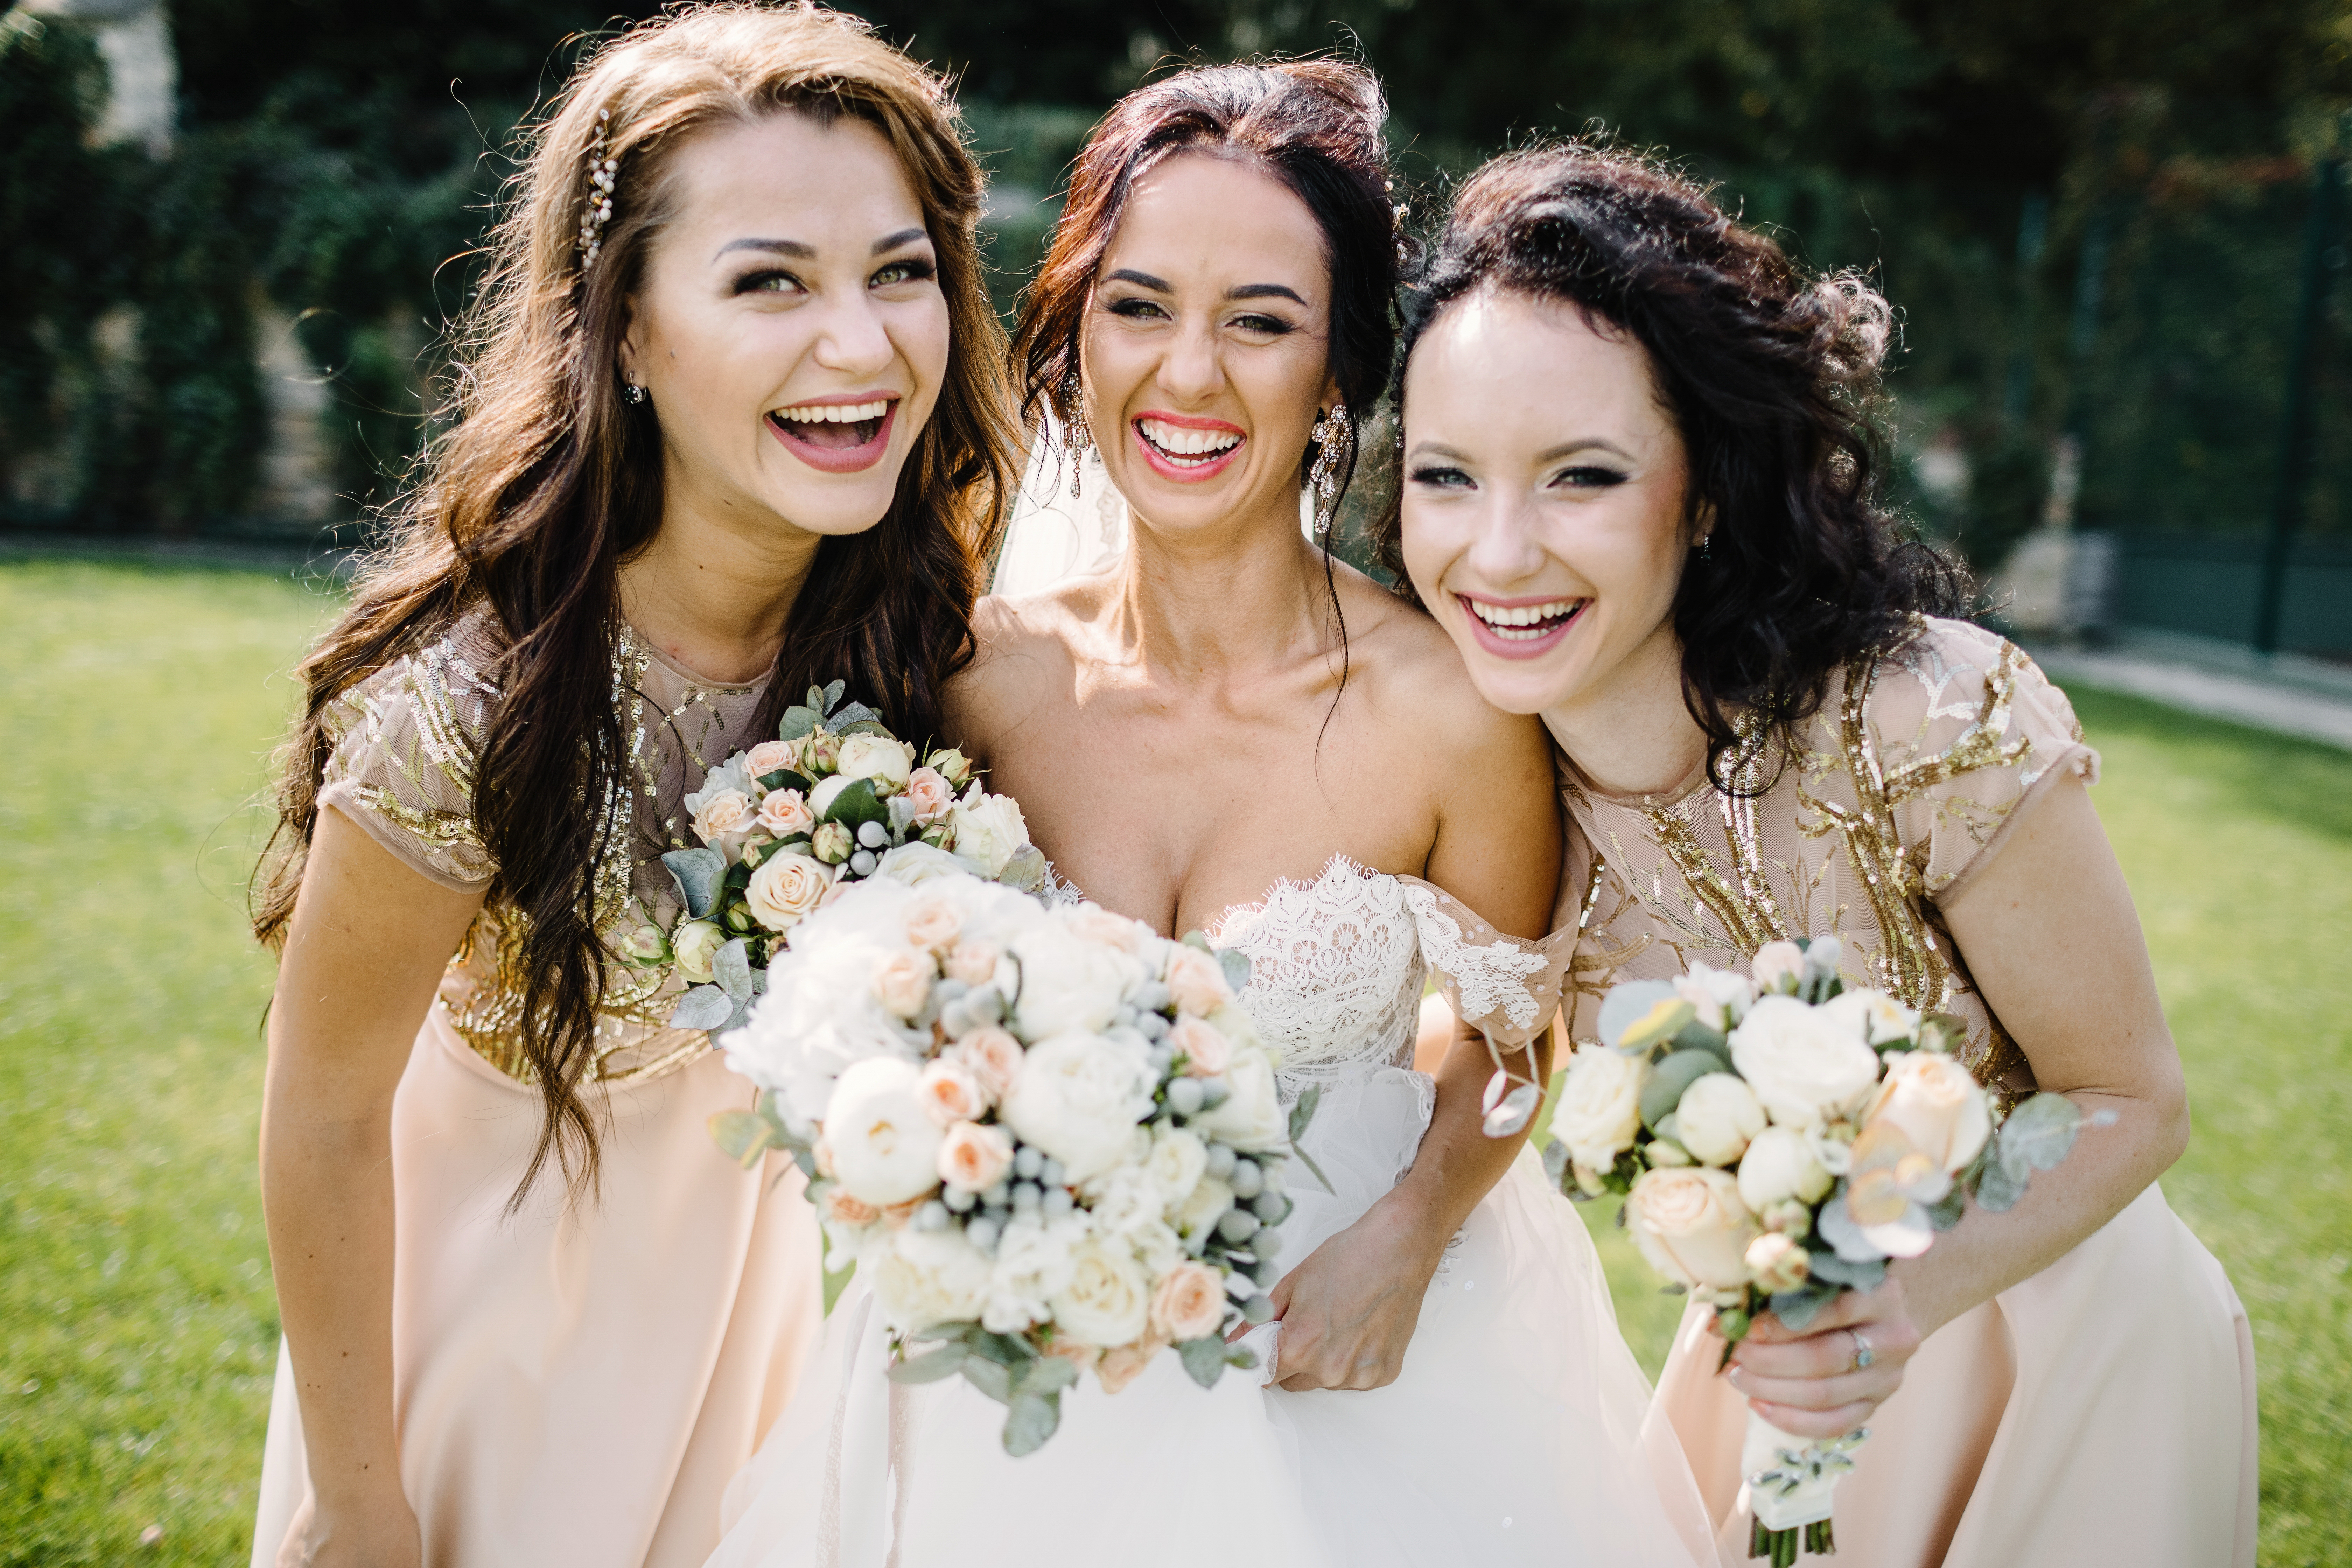 Laughing bride and bridesmaids tell funn